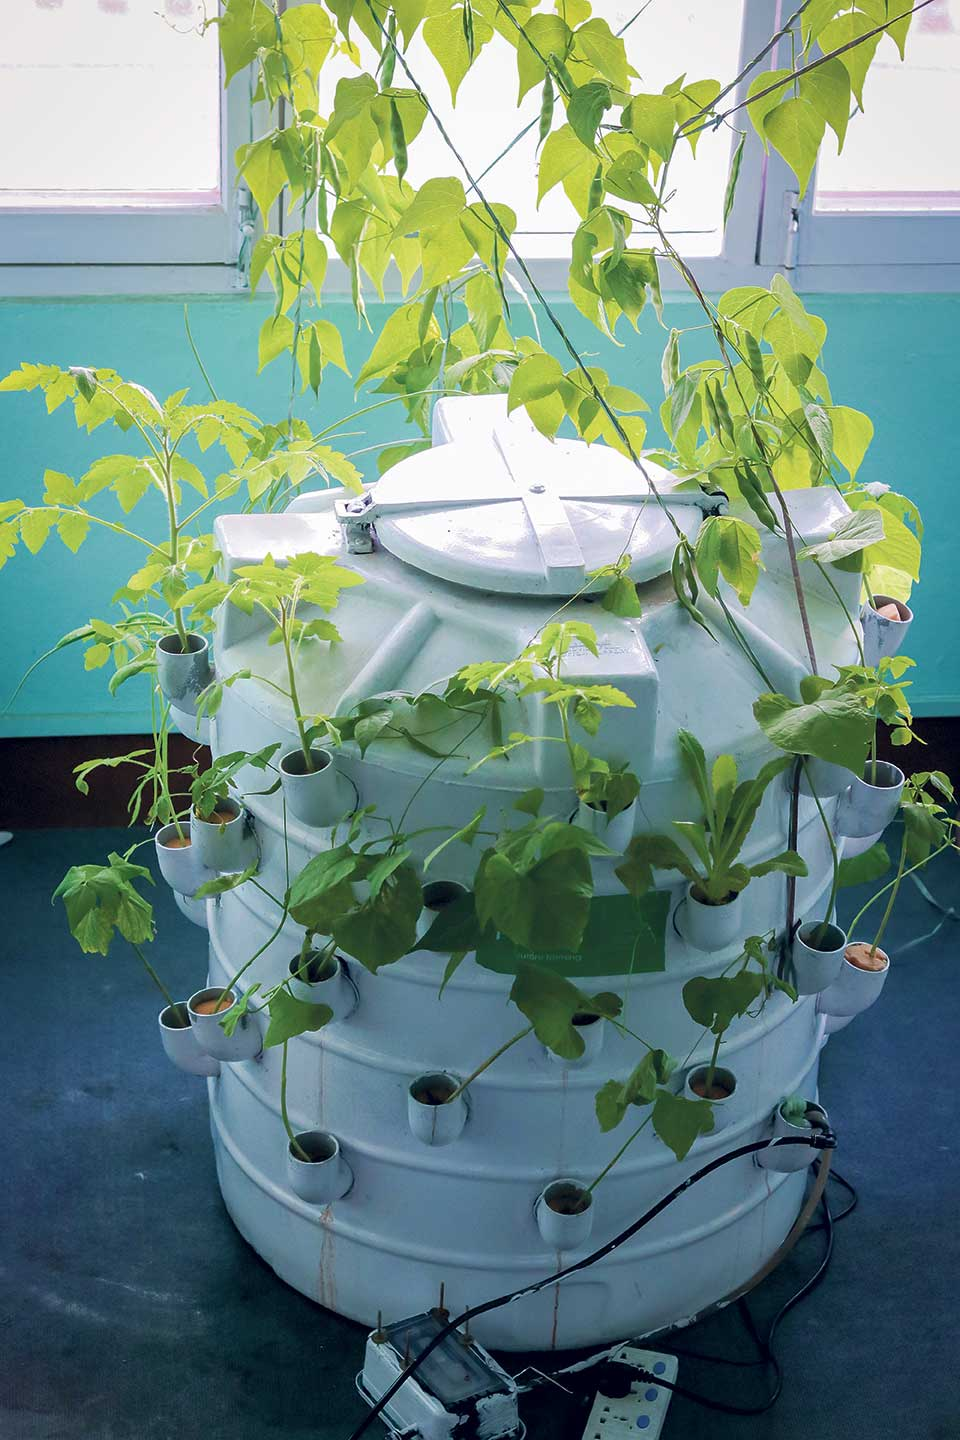 Urban rooftop farms as new city culture